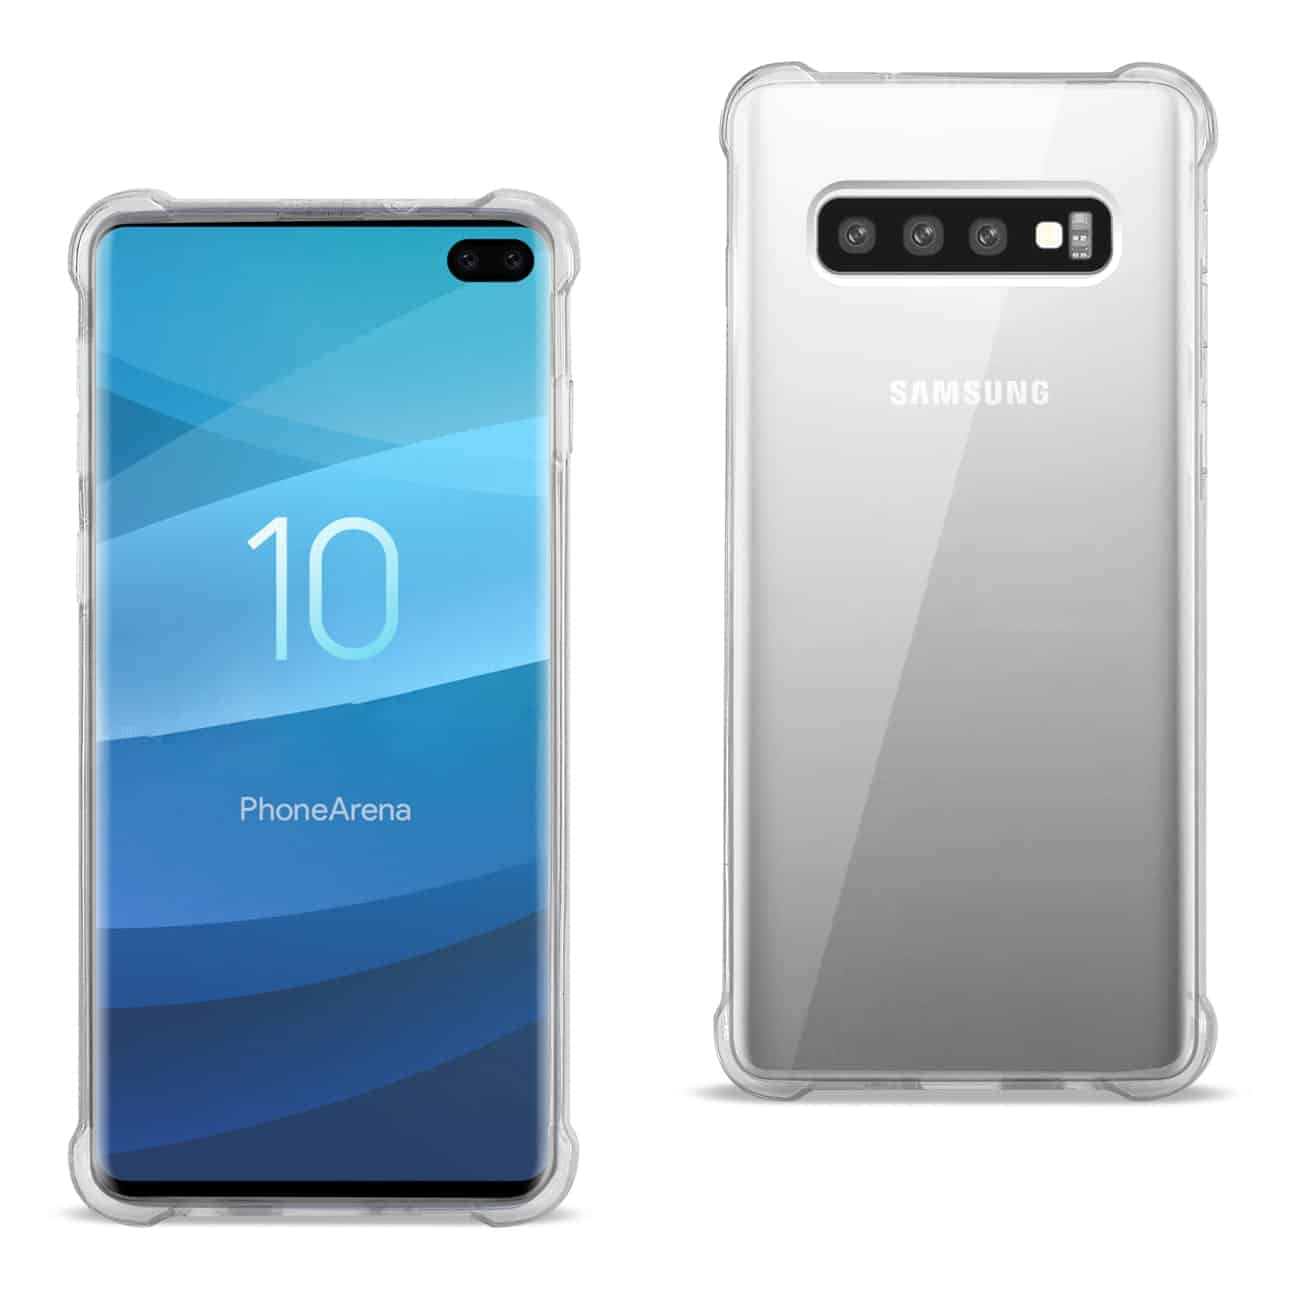 SAMSUNG GALAXY S10 Plus Clear Bumper Case With Air Cushion Protection